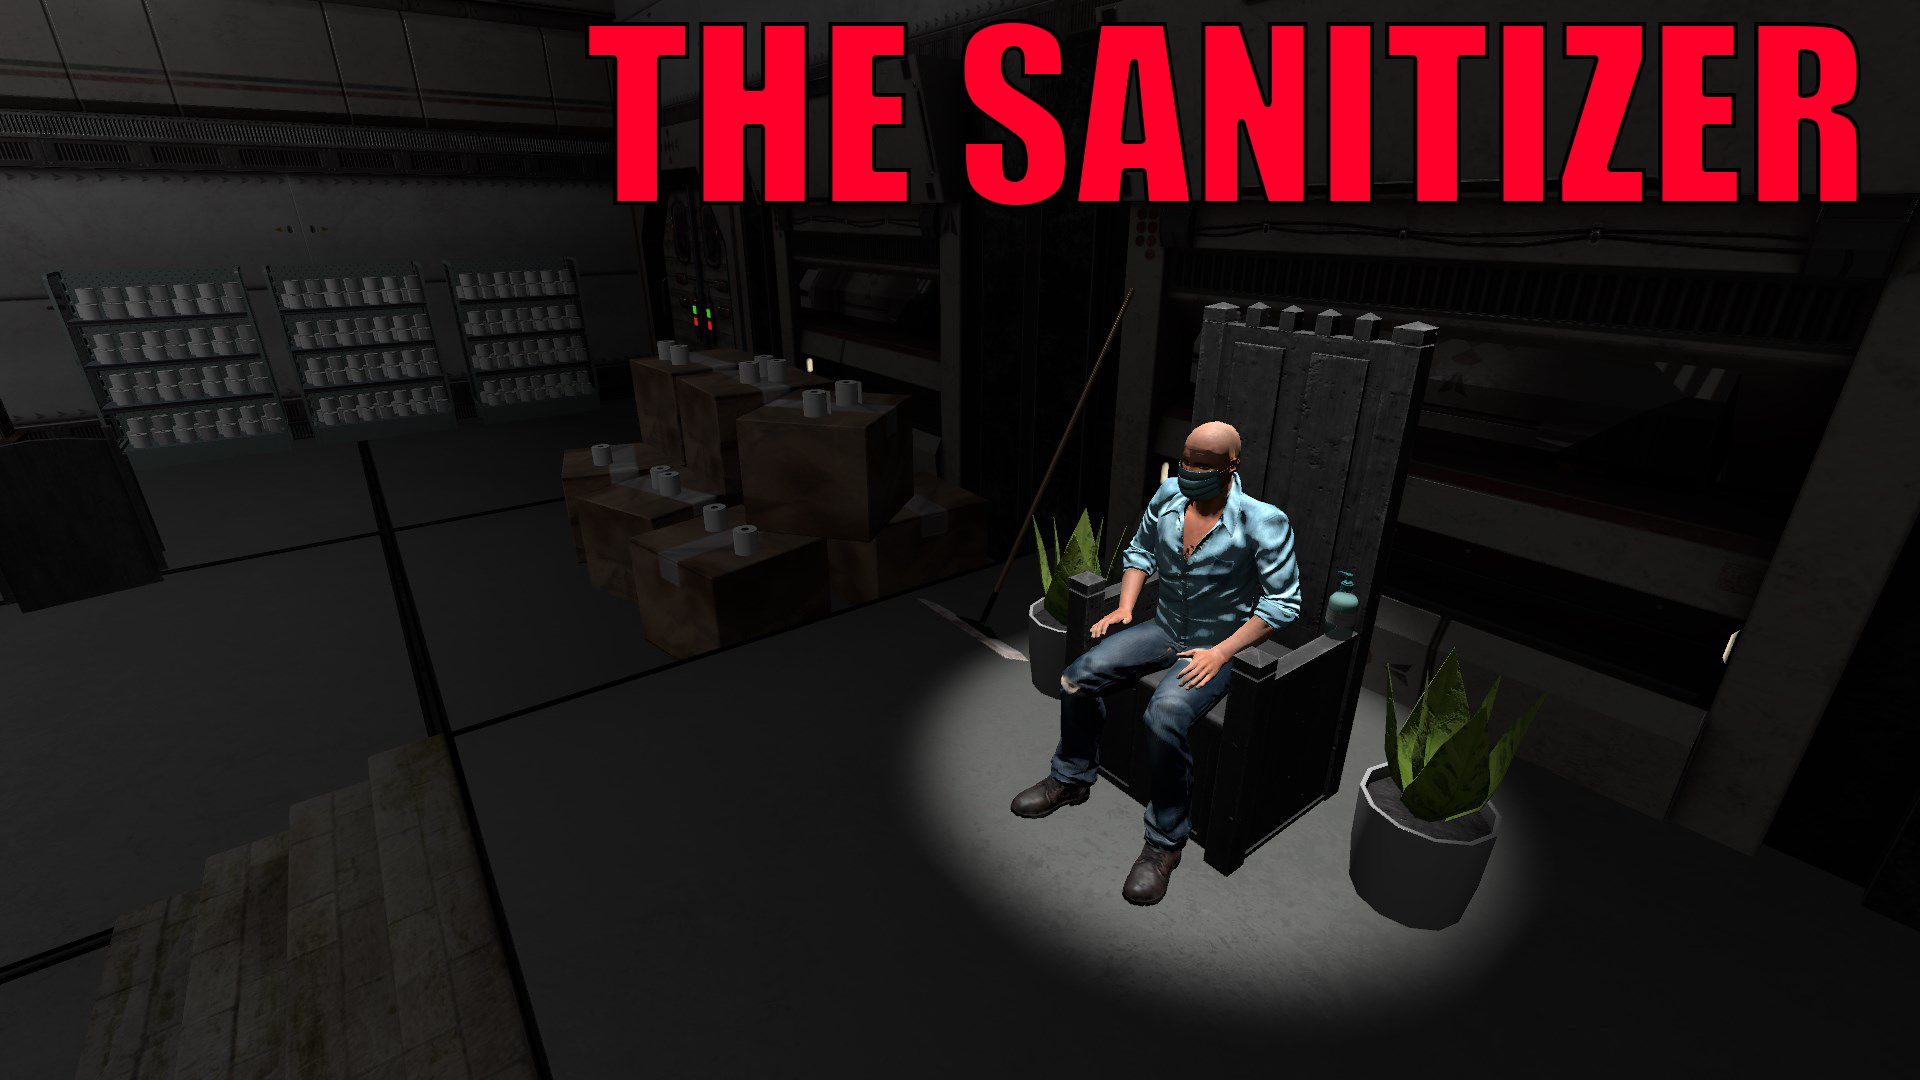 THE SANITIZER